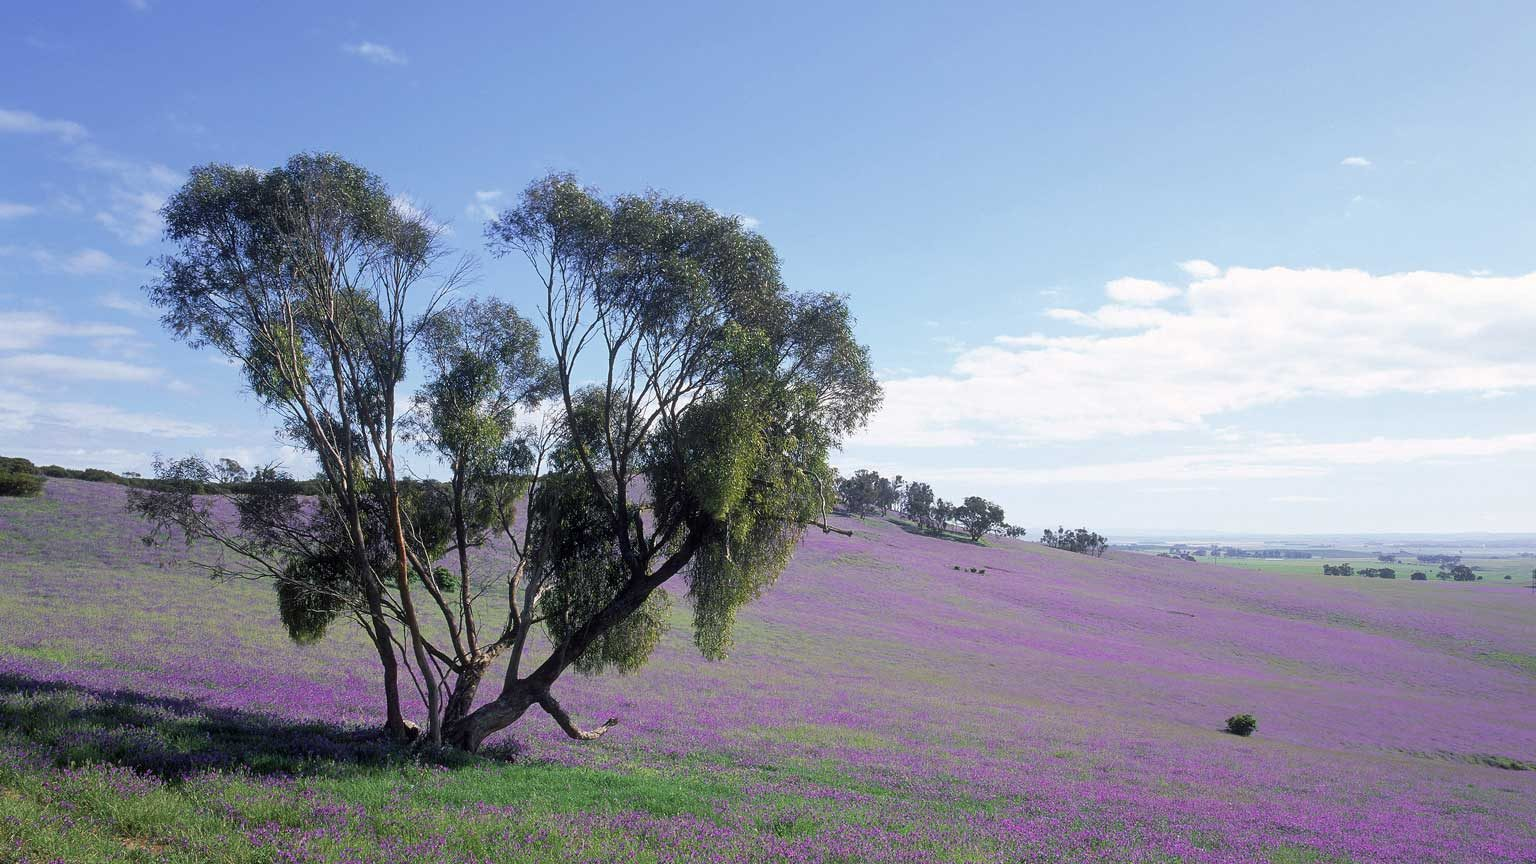 Tree & purple weed in rural landscape, Mintaro, Clare Valley